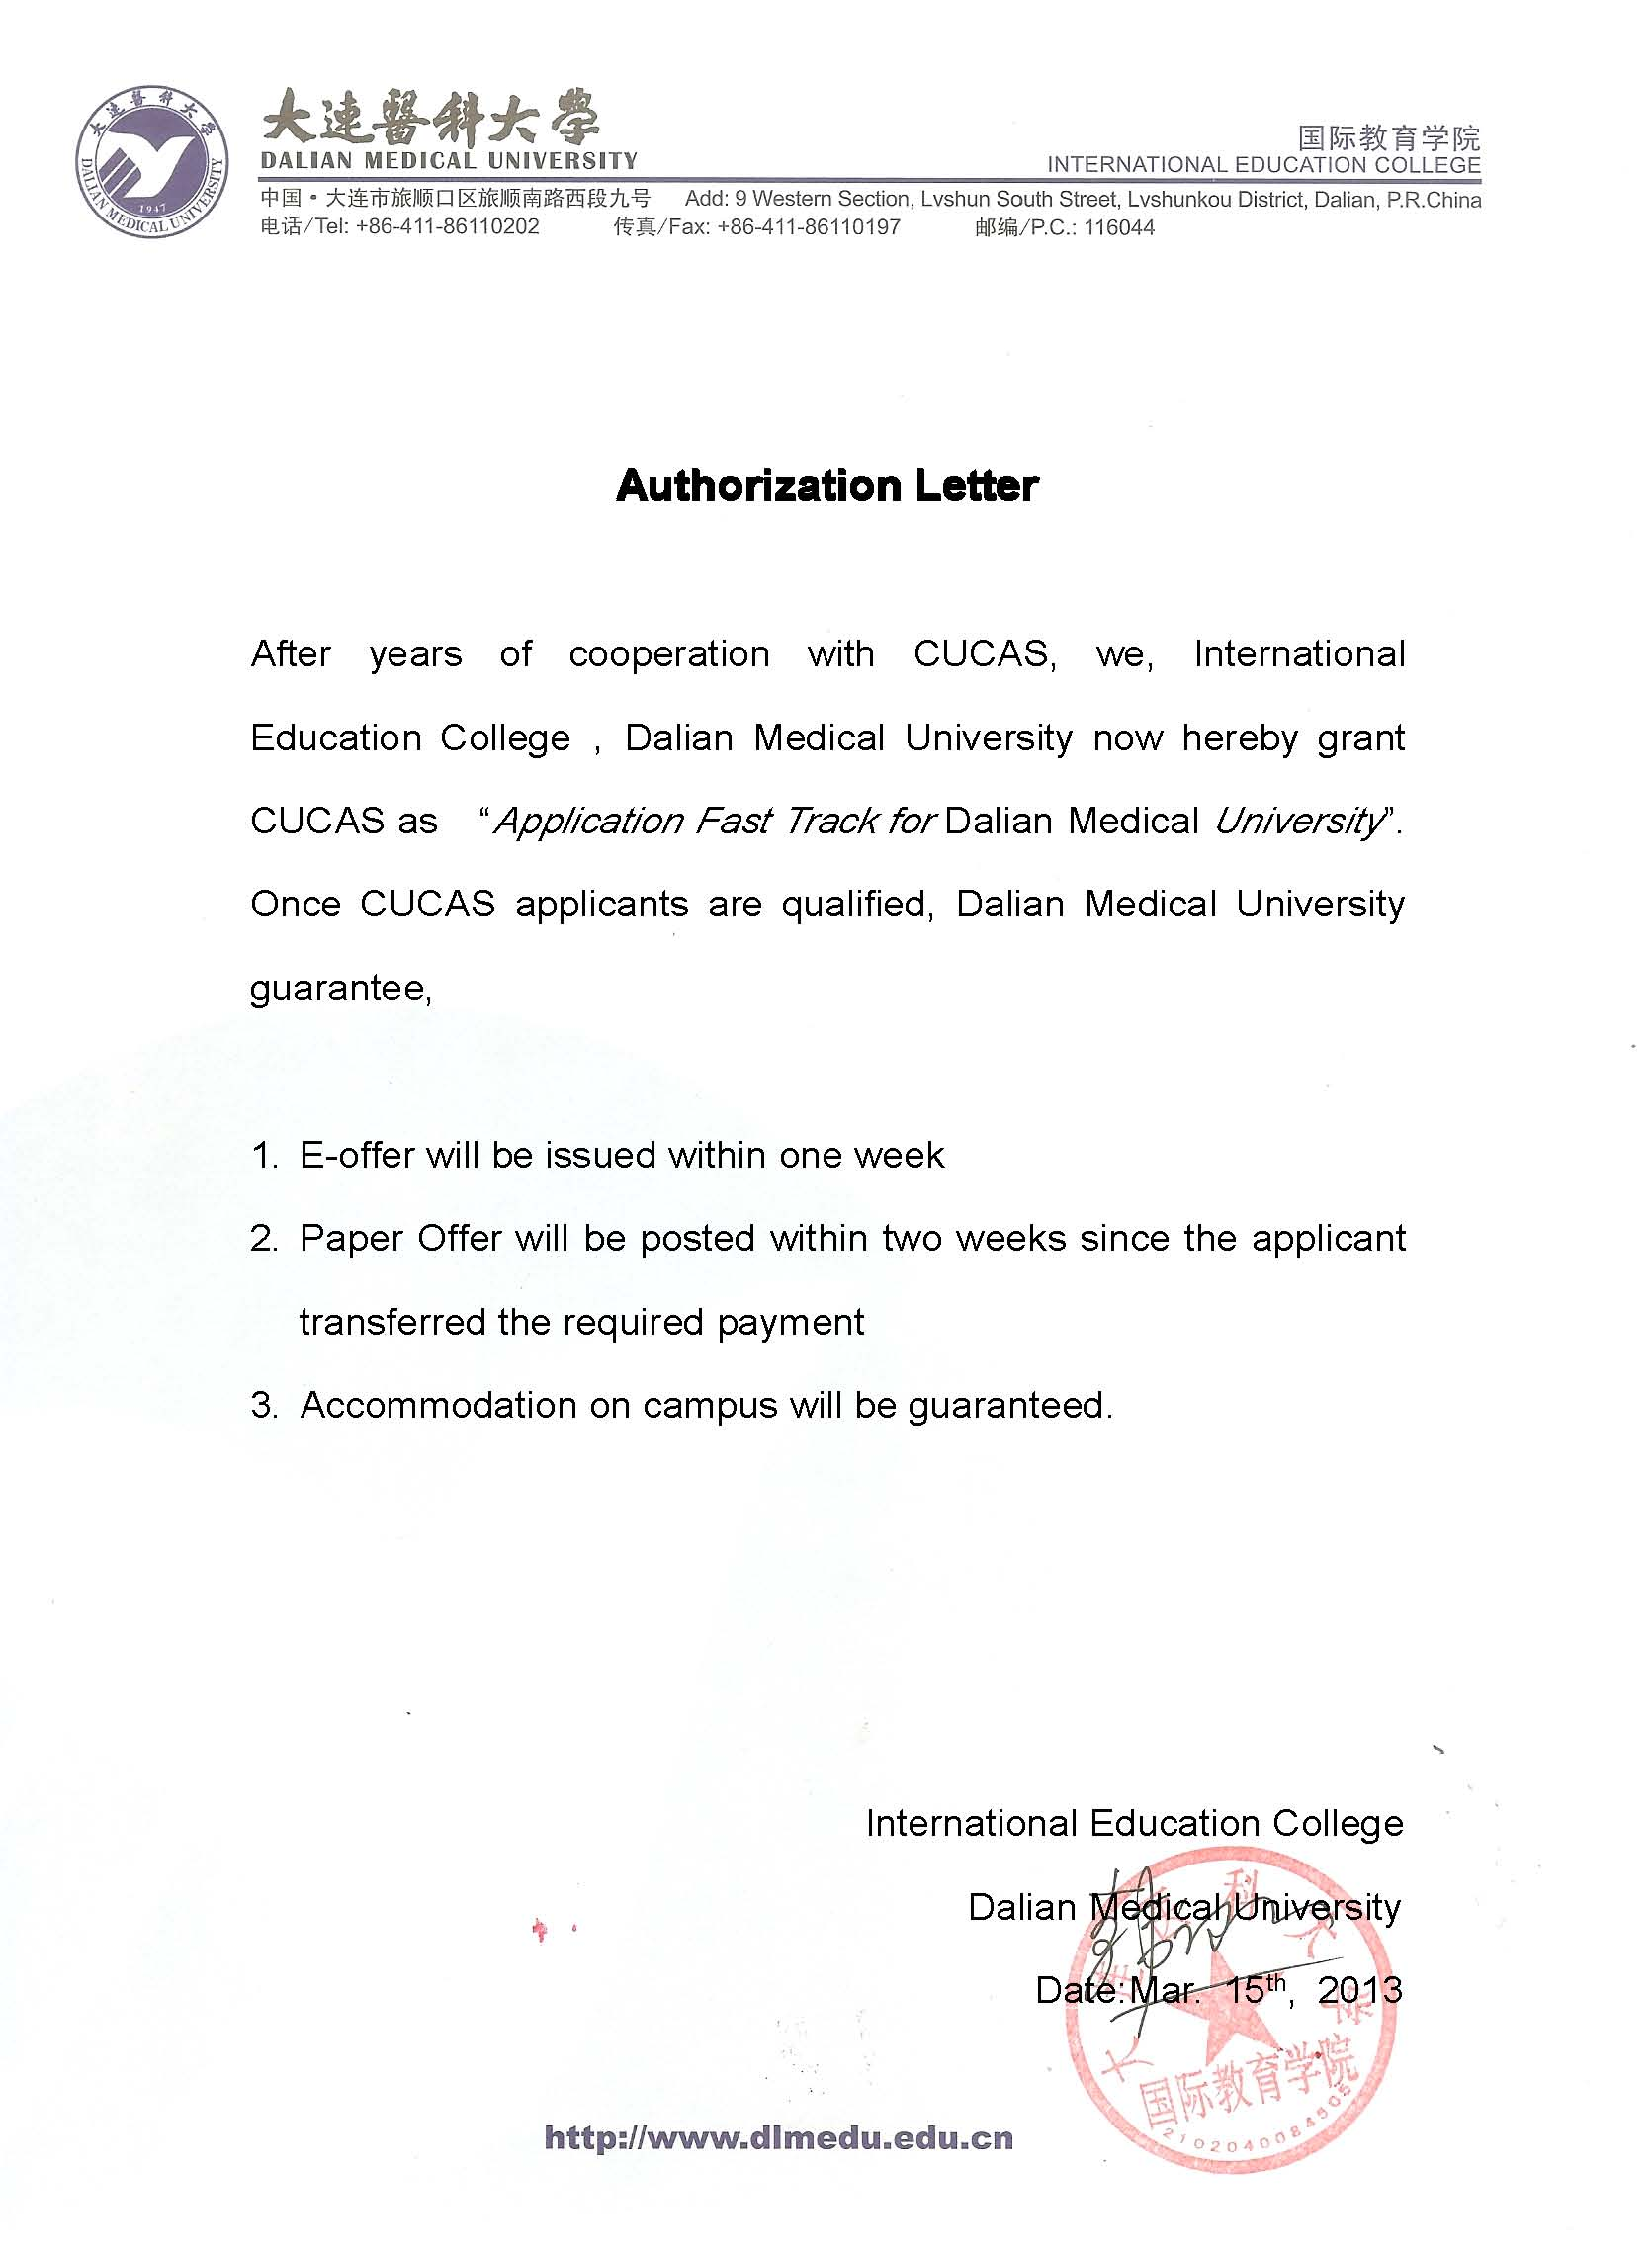 Dalian Medical University Authorization Letter | Study In China | CUCAS